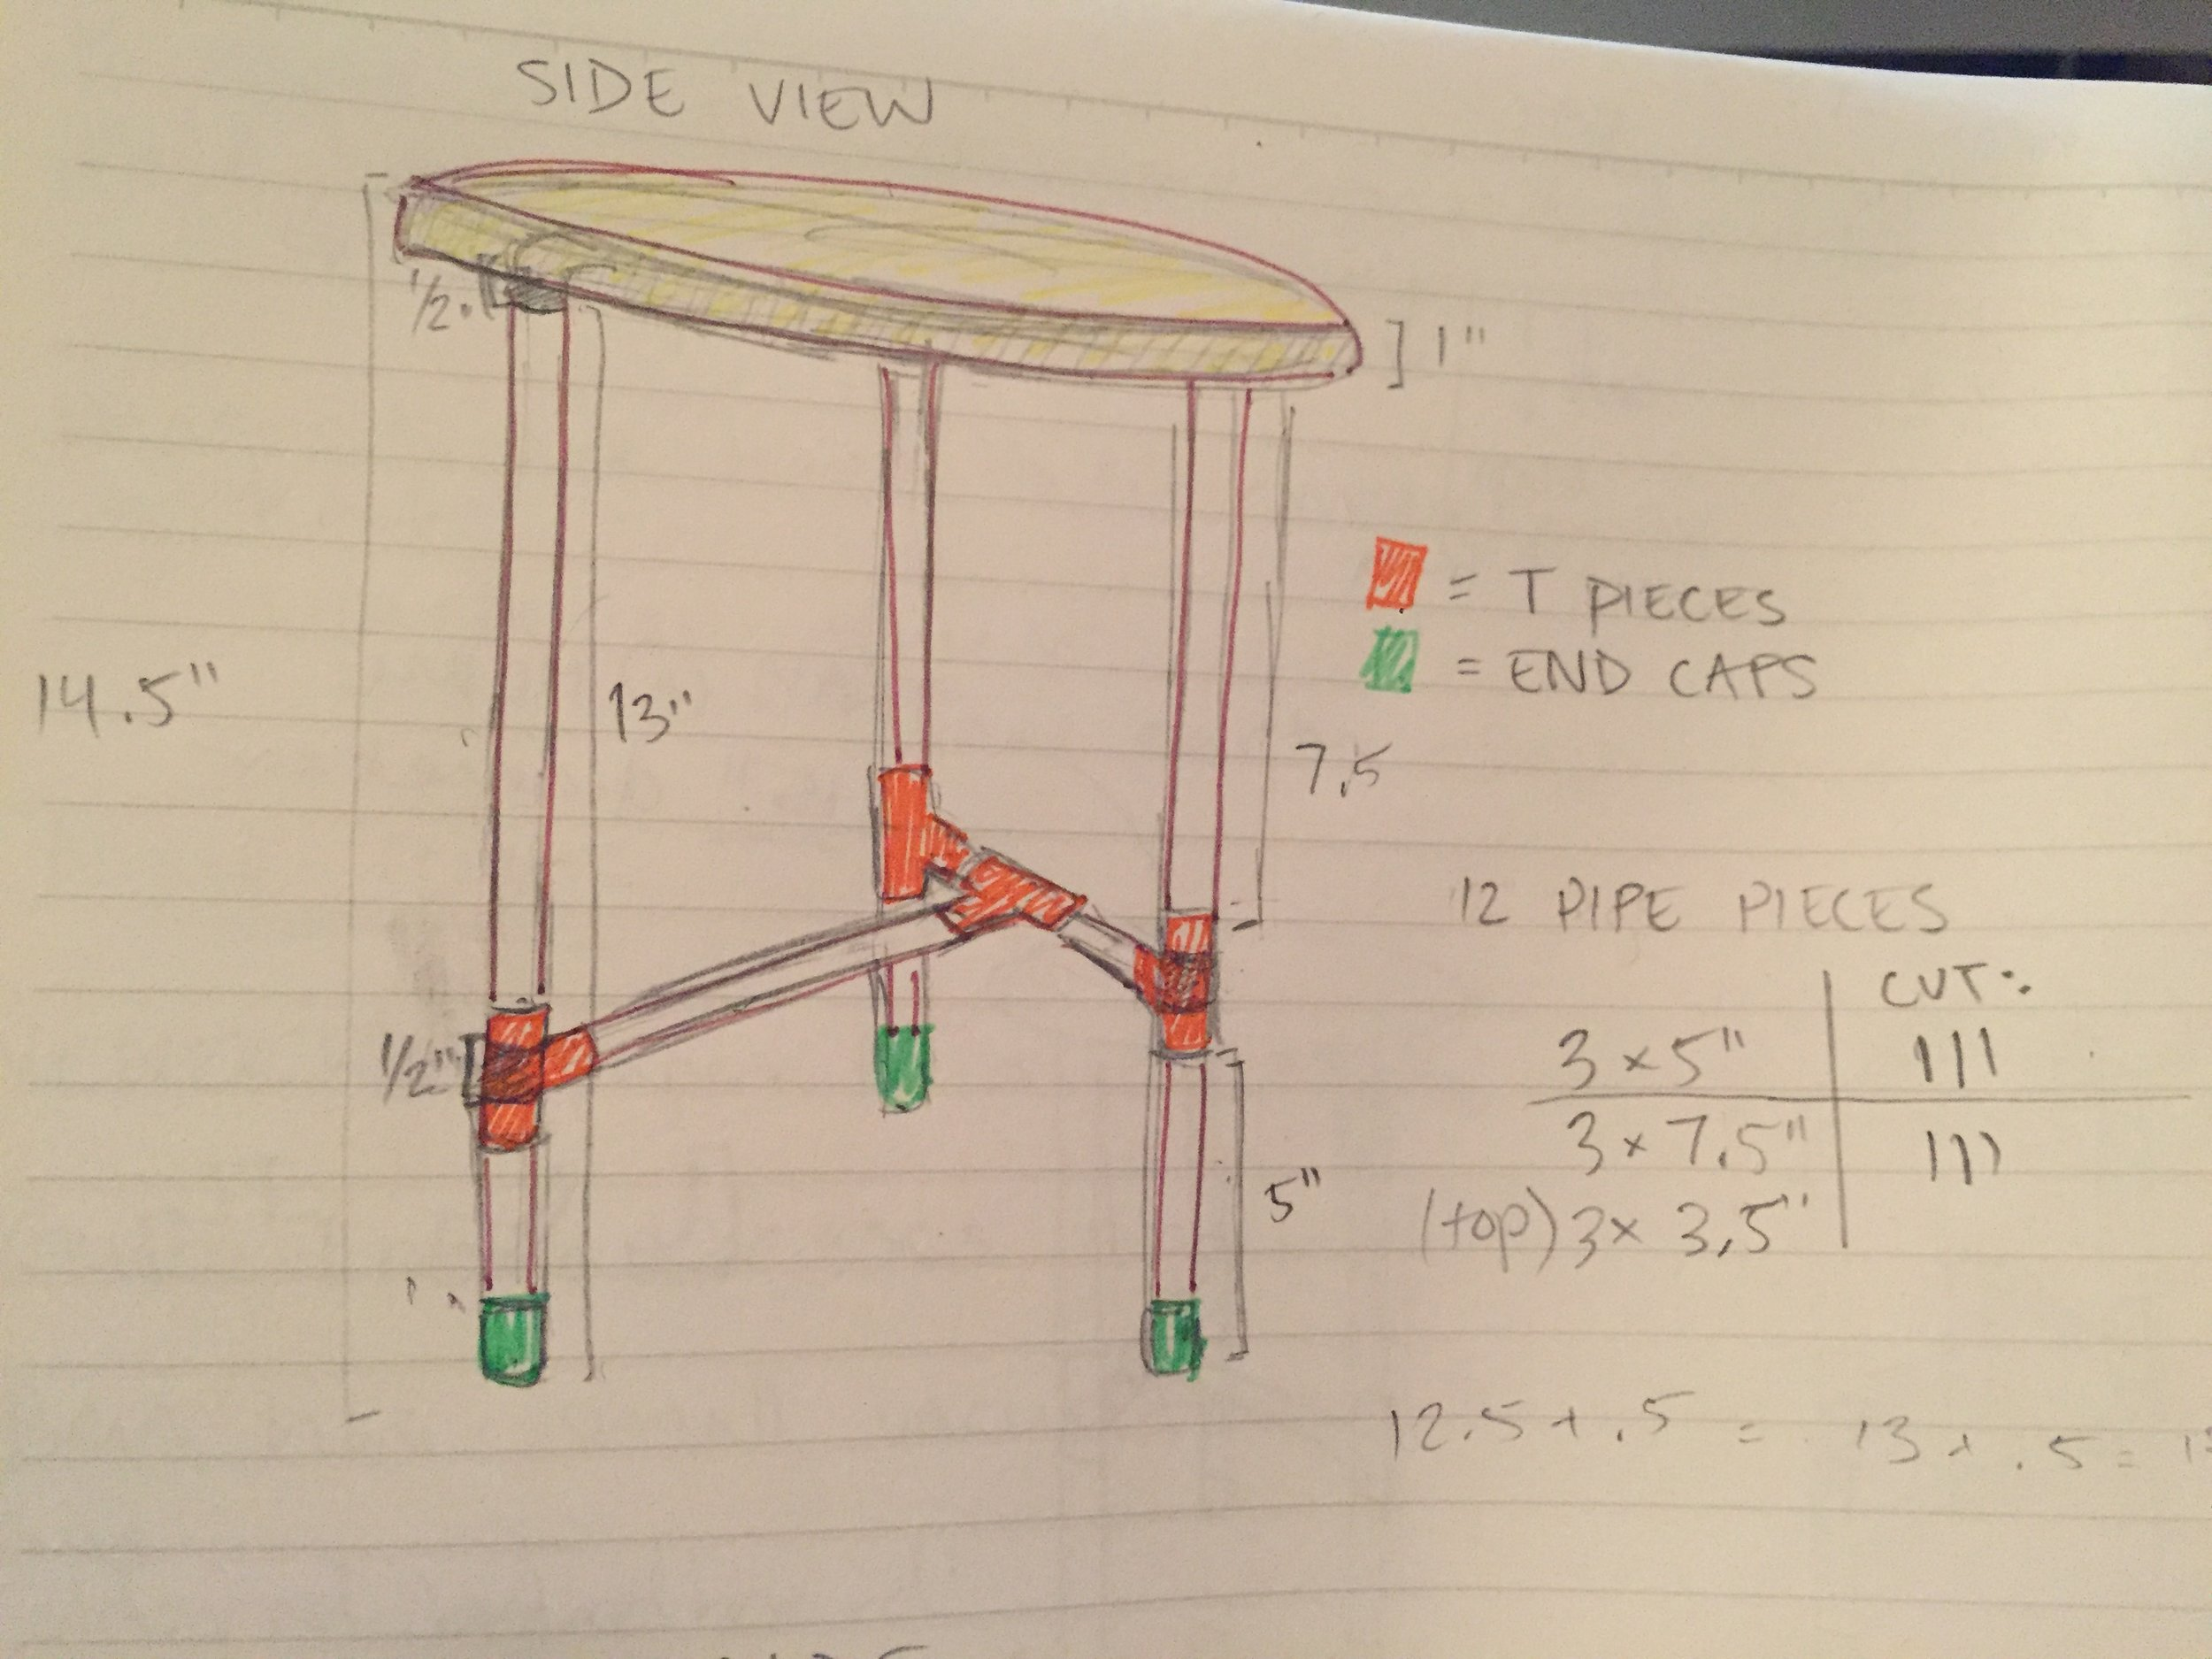 Revisited my original sketch to visually see the measurements and keep track of how many pieces I had cut.